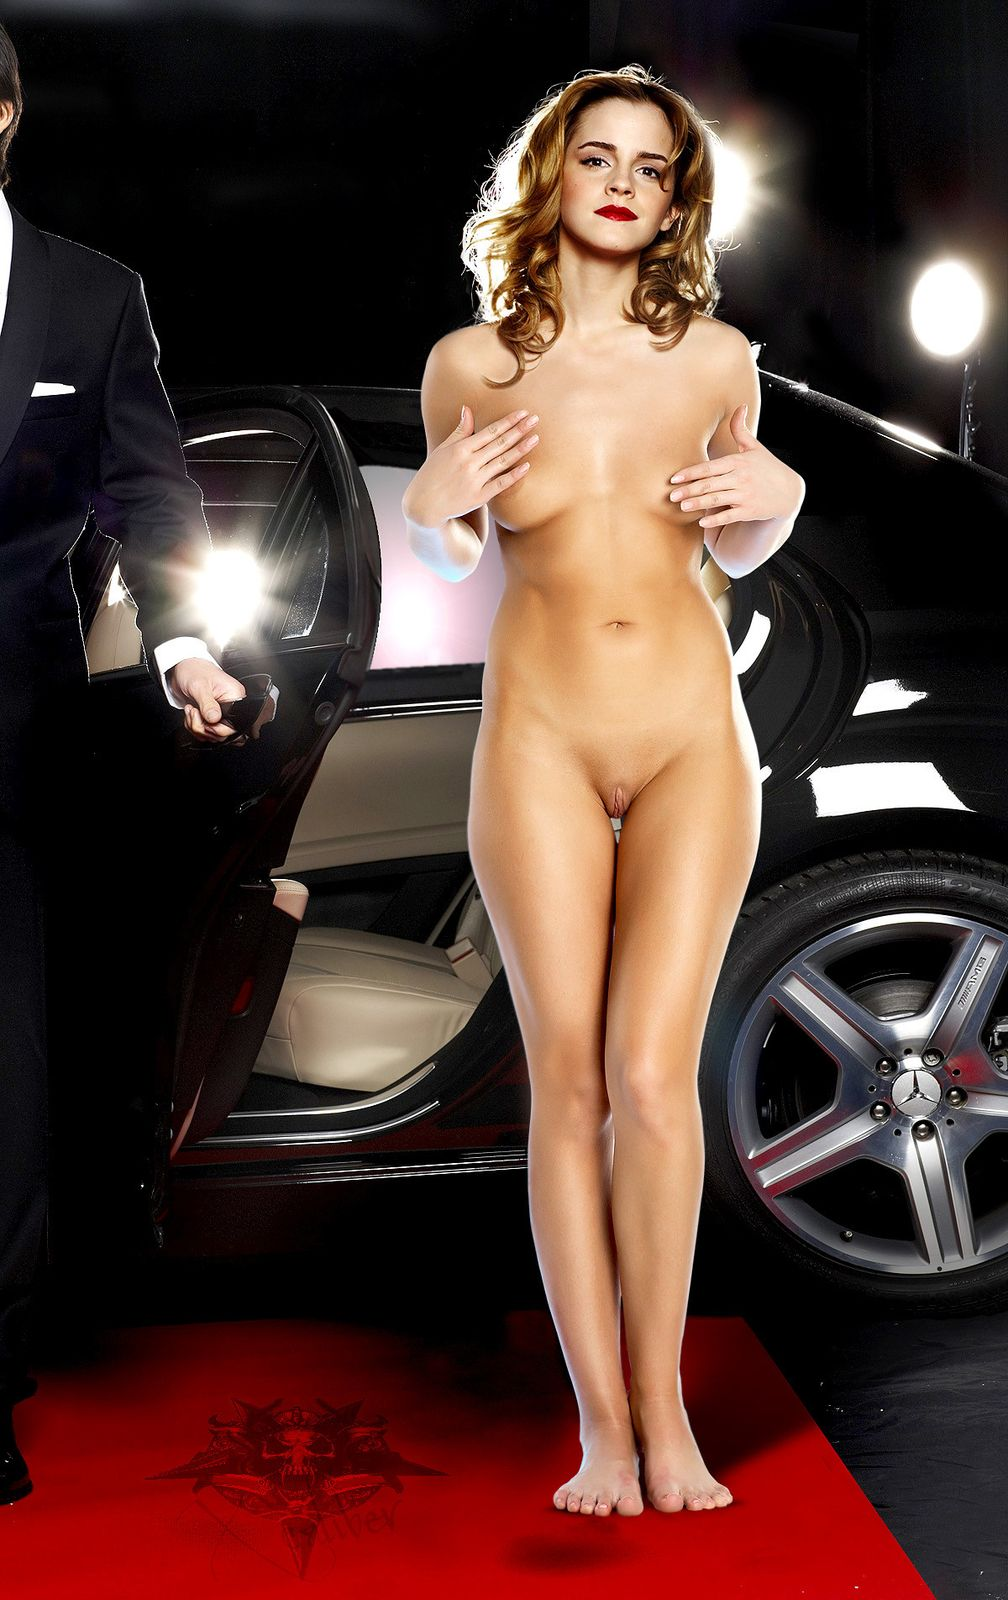 Emma Watson Nude at Car Trade Show